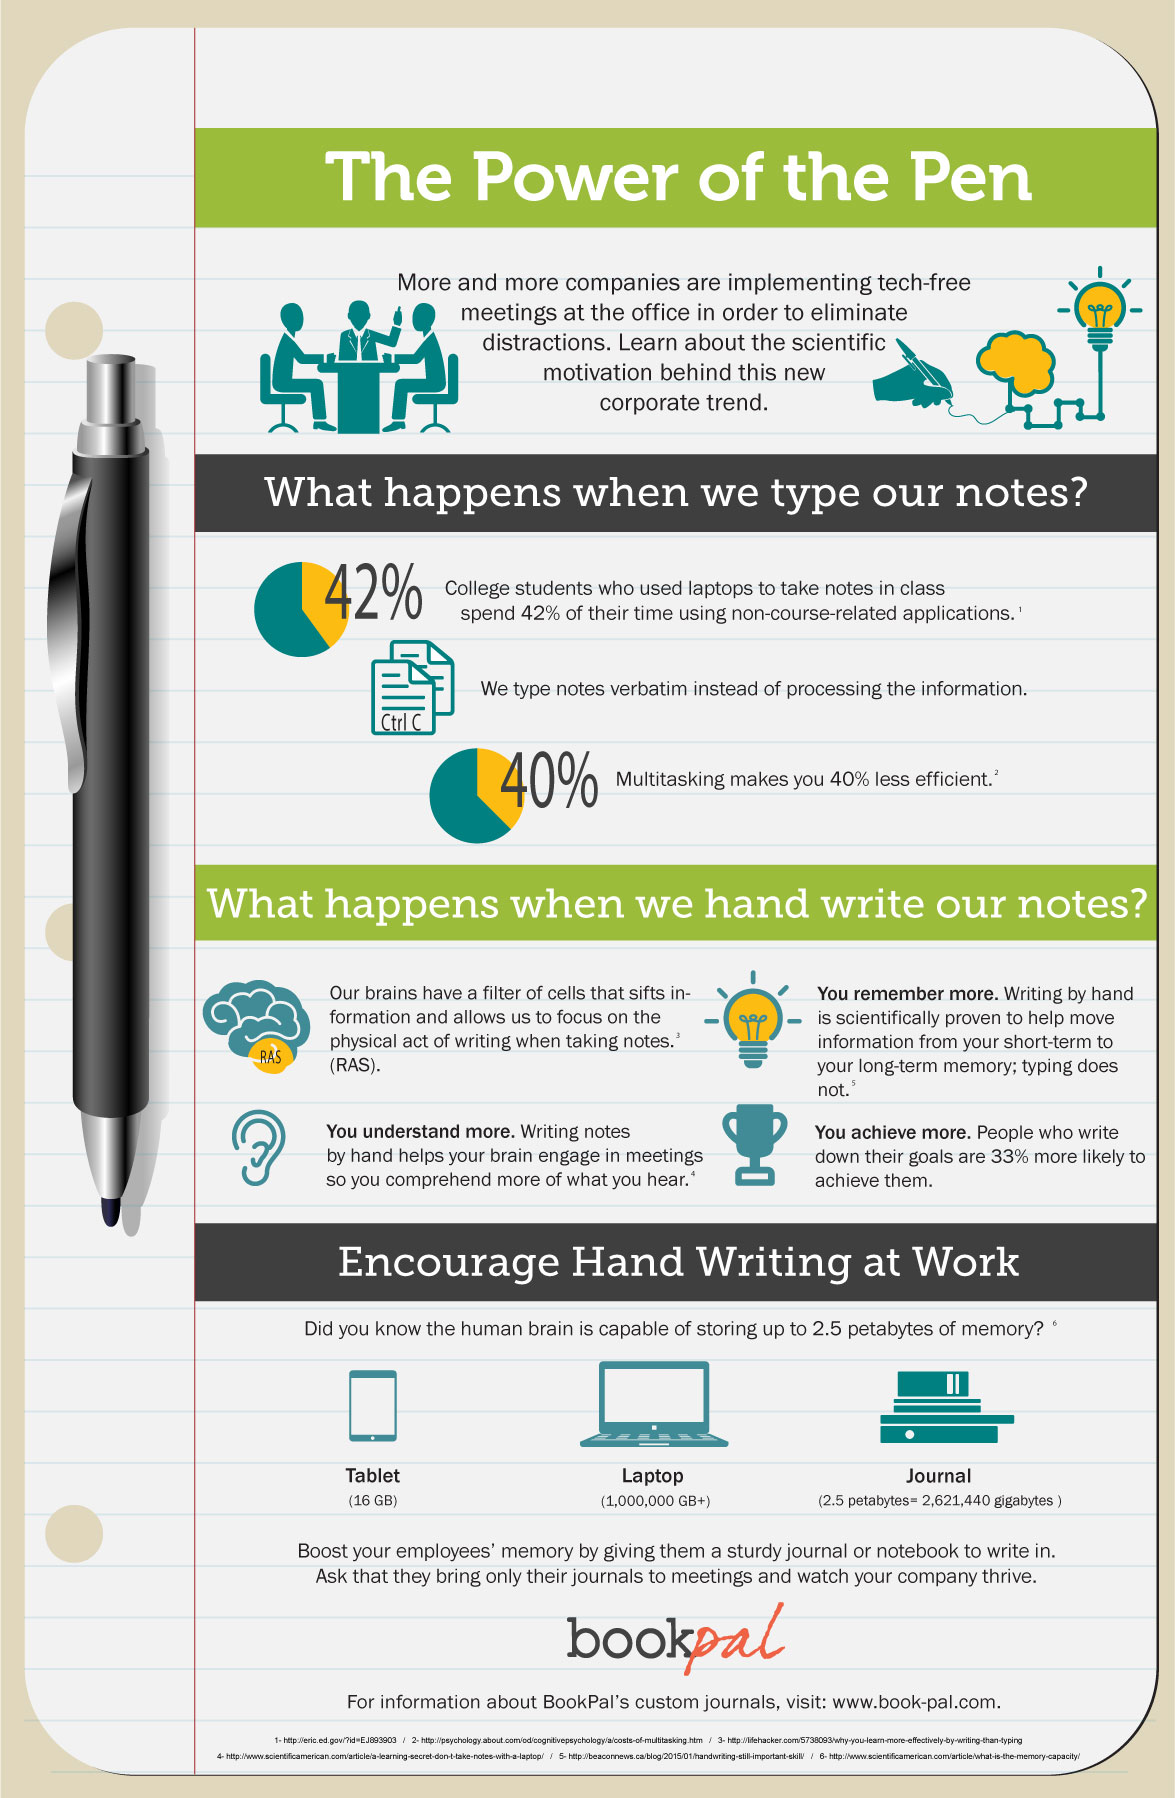 The Power of the Pen Infographic